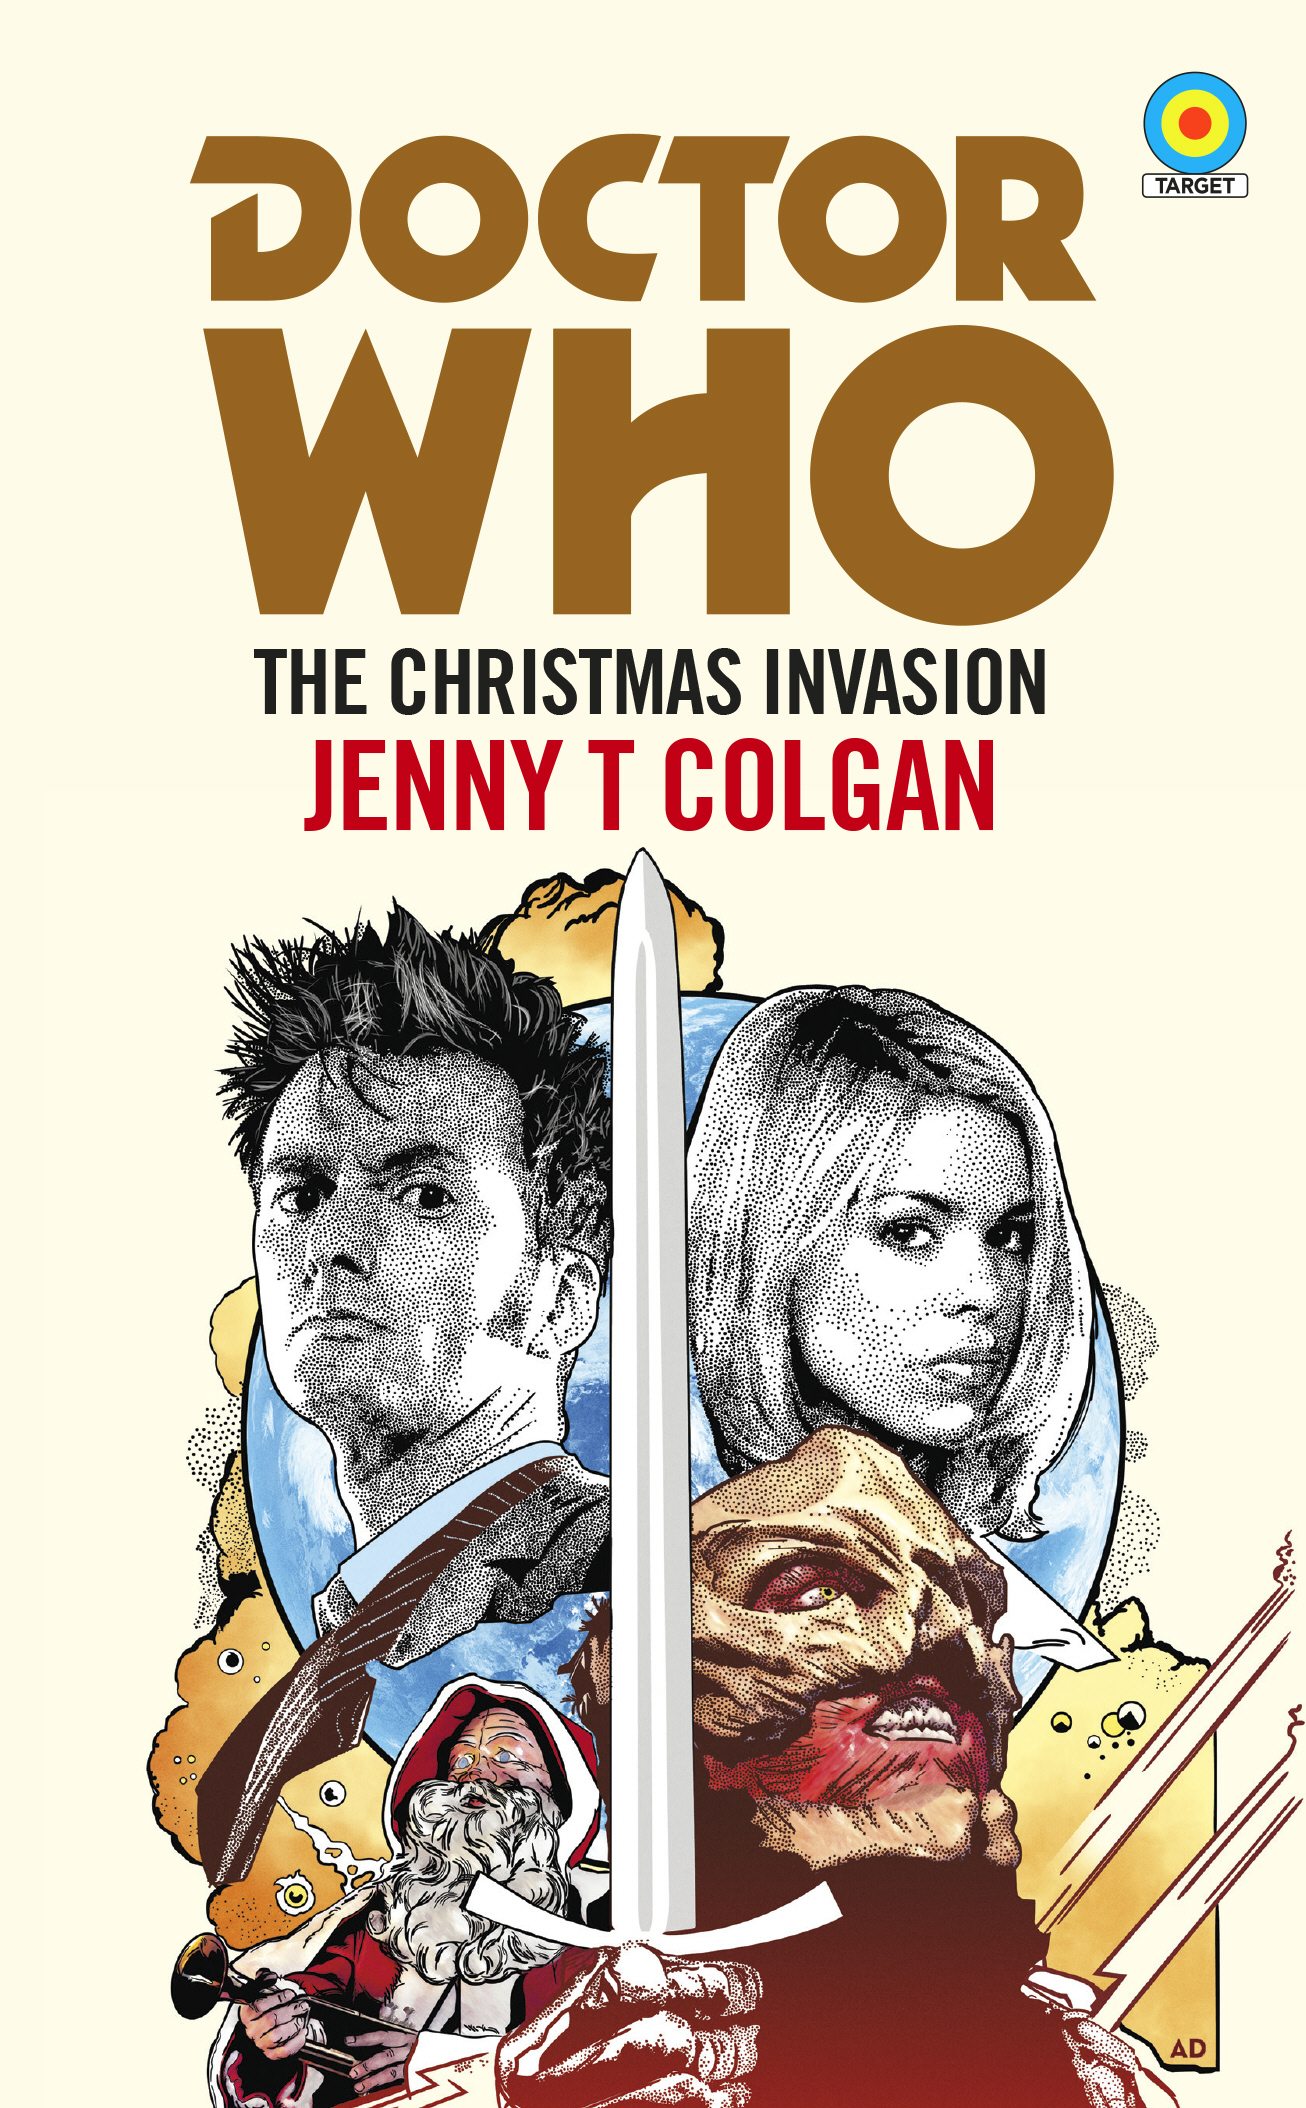 The Christmas Invasion (Credit: BBC Books)